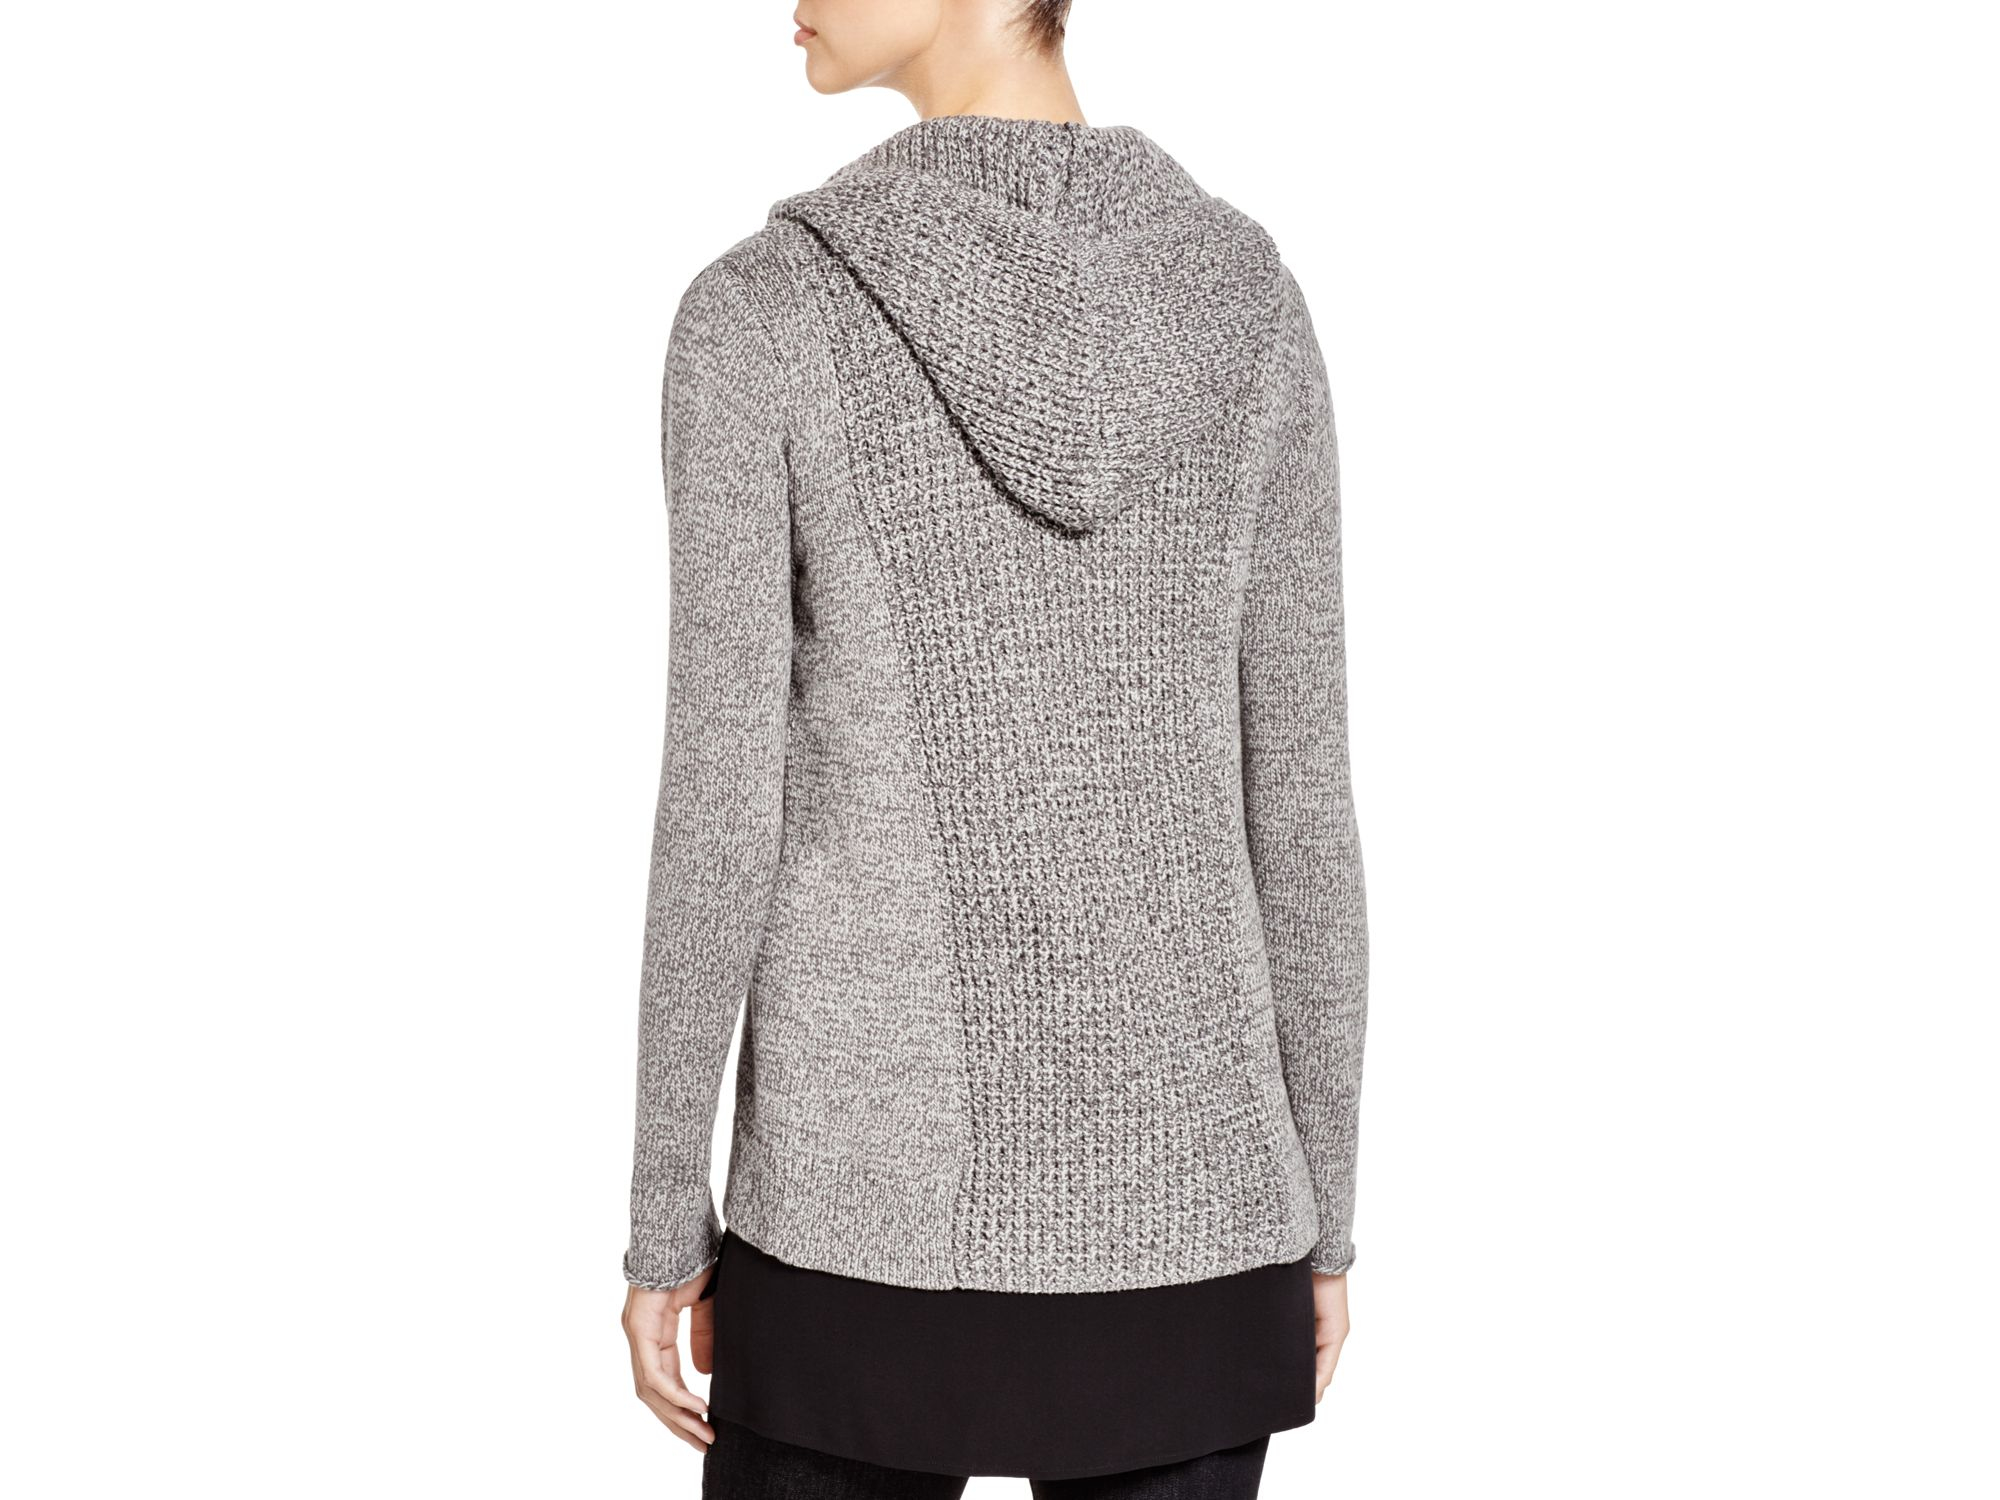 Eileen fisher Organic Cotton Hooded Cardigan in Gray | Lyst